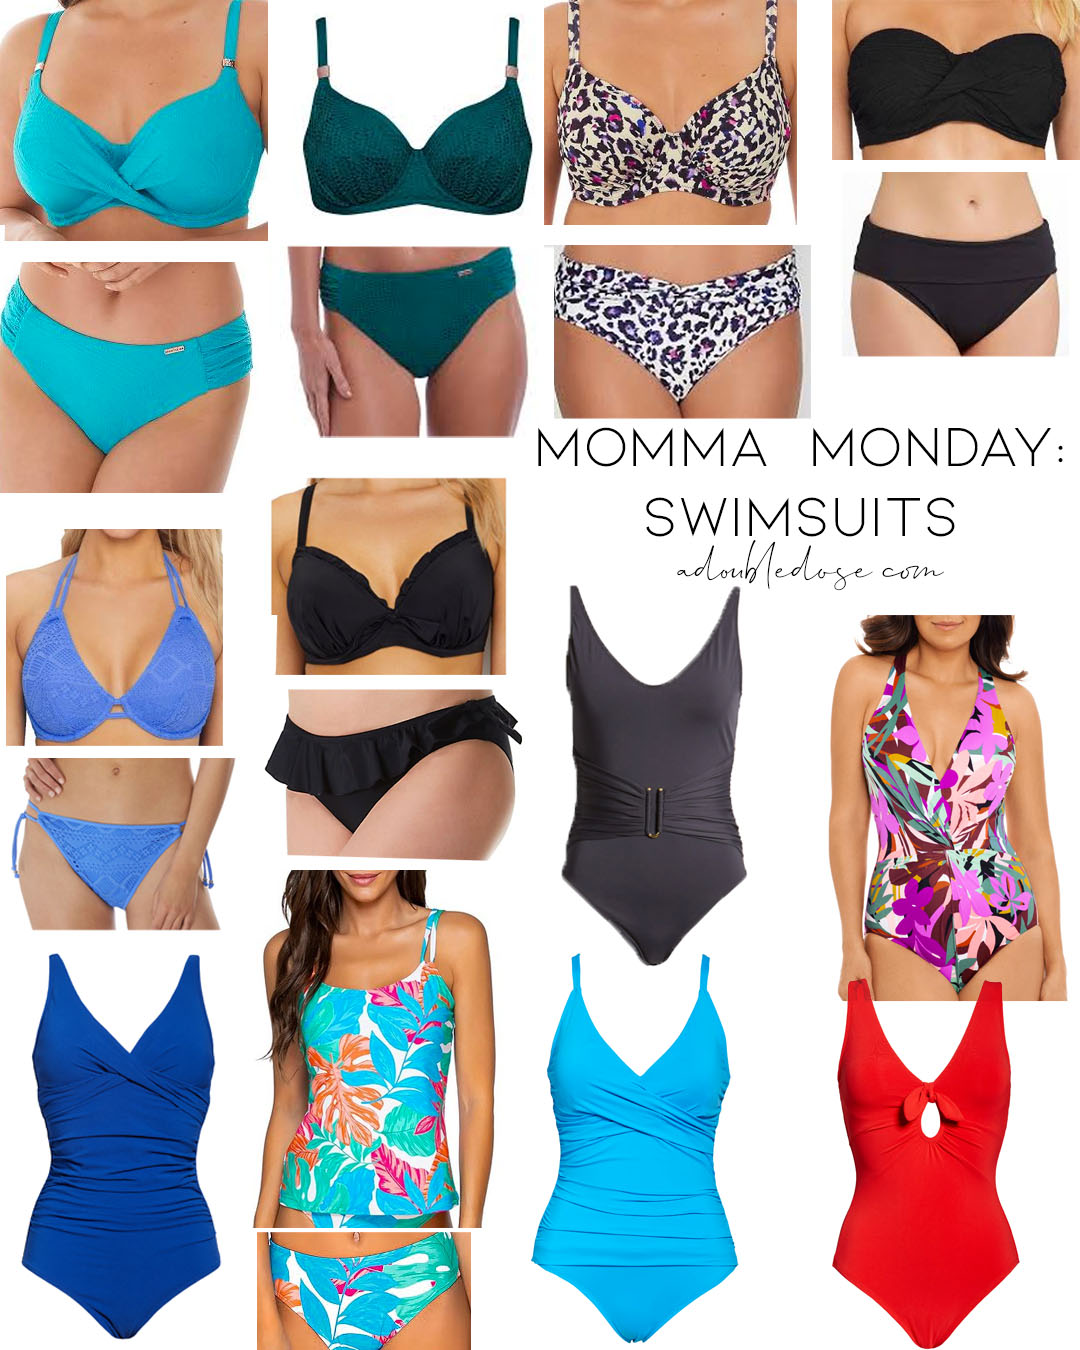 lifestyle and fashion blogger alexis belbel sharing momma monday, a roundup of her mom's favorite swimsuits that are fuller coverage, cute, and on sale | adoubledose.com